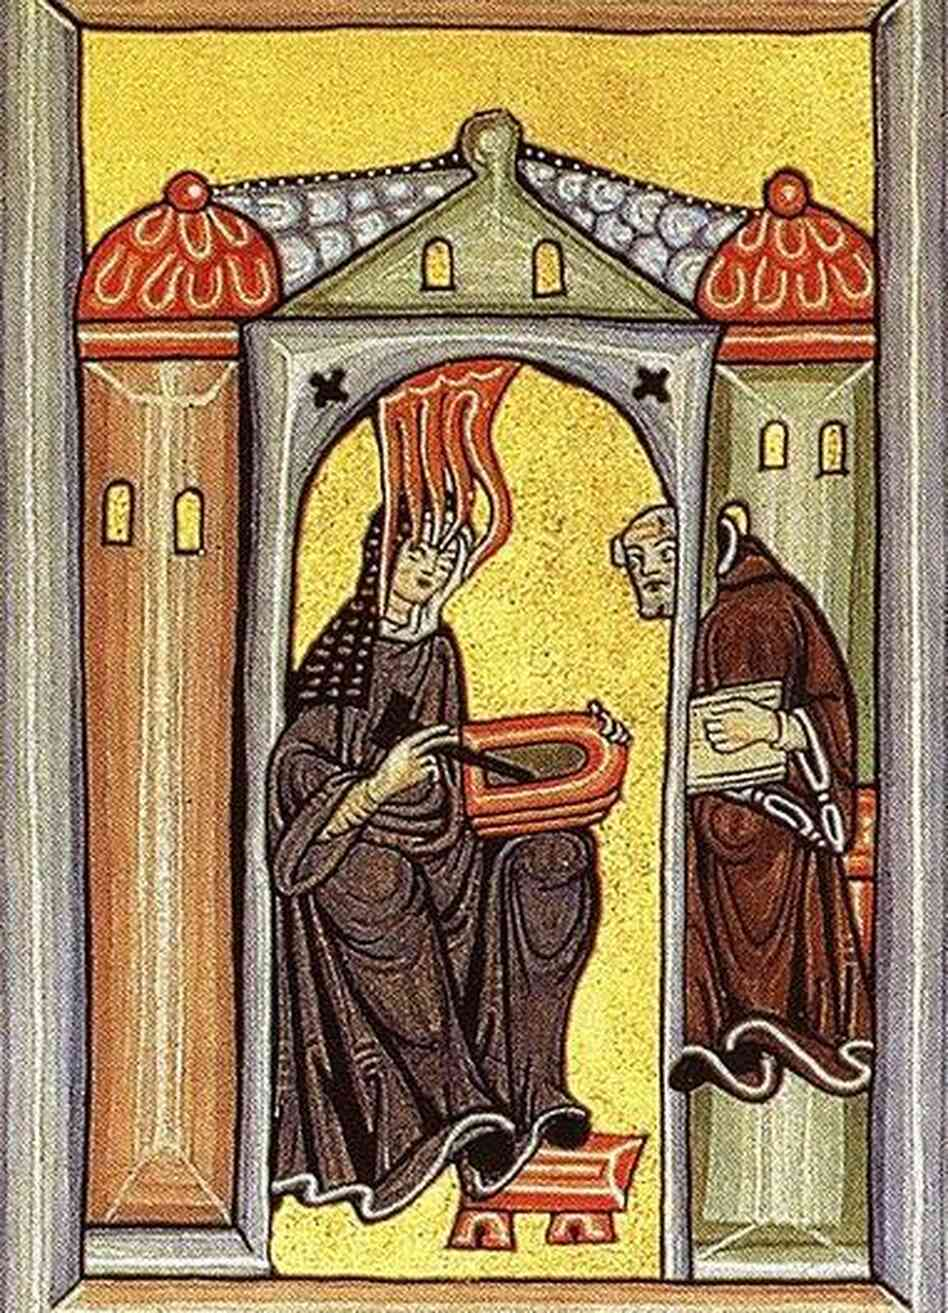 An image of the Holy Spirit-inspired Hildegard and her scribe from the Rupertsberg Codex des Liber Scivias, c. 1180.